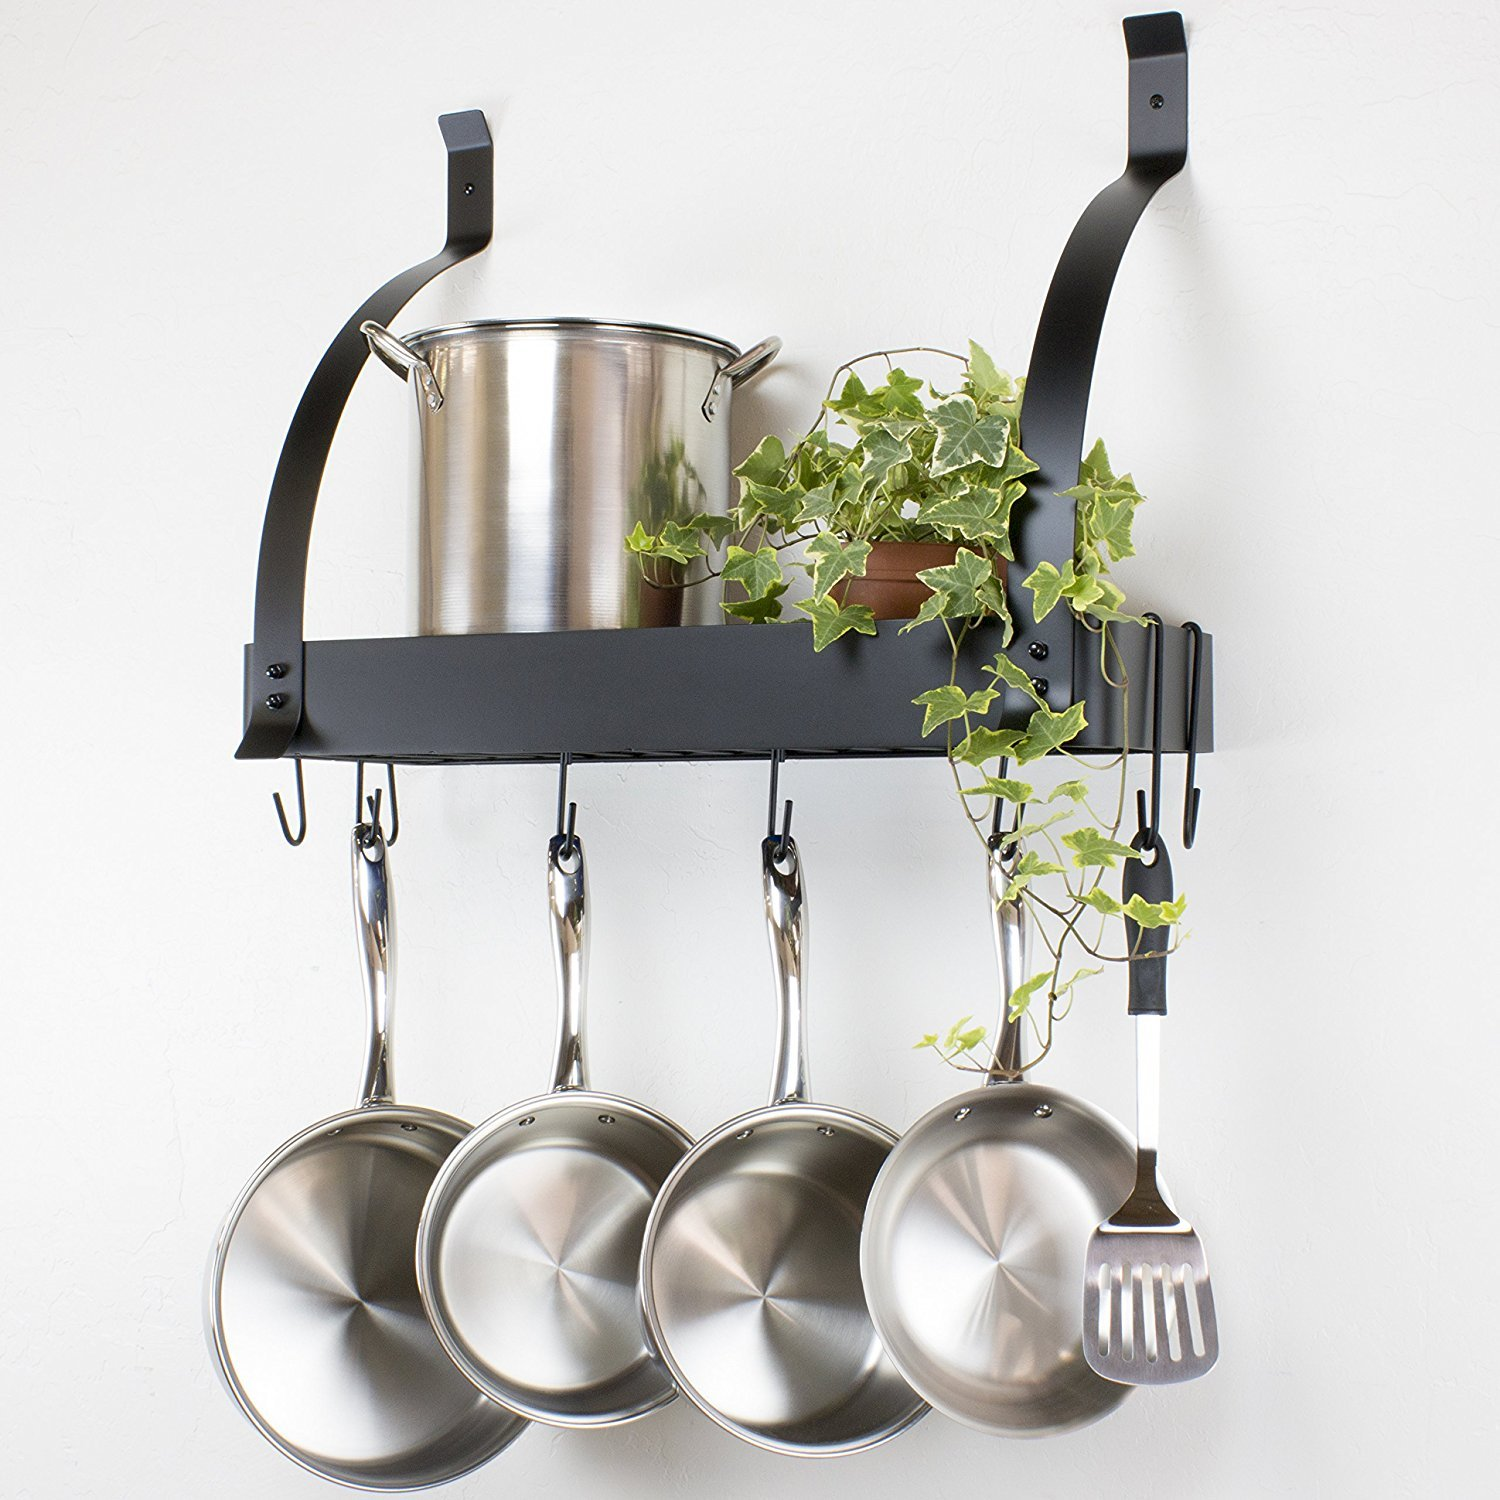 Contour Essentials Stainless Steel Wall Mounted Kitchen Pot Rack with 10 Hooks SYNCHKG114159